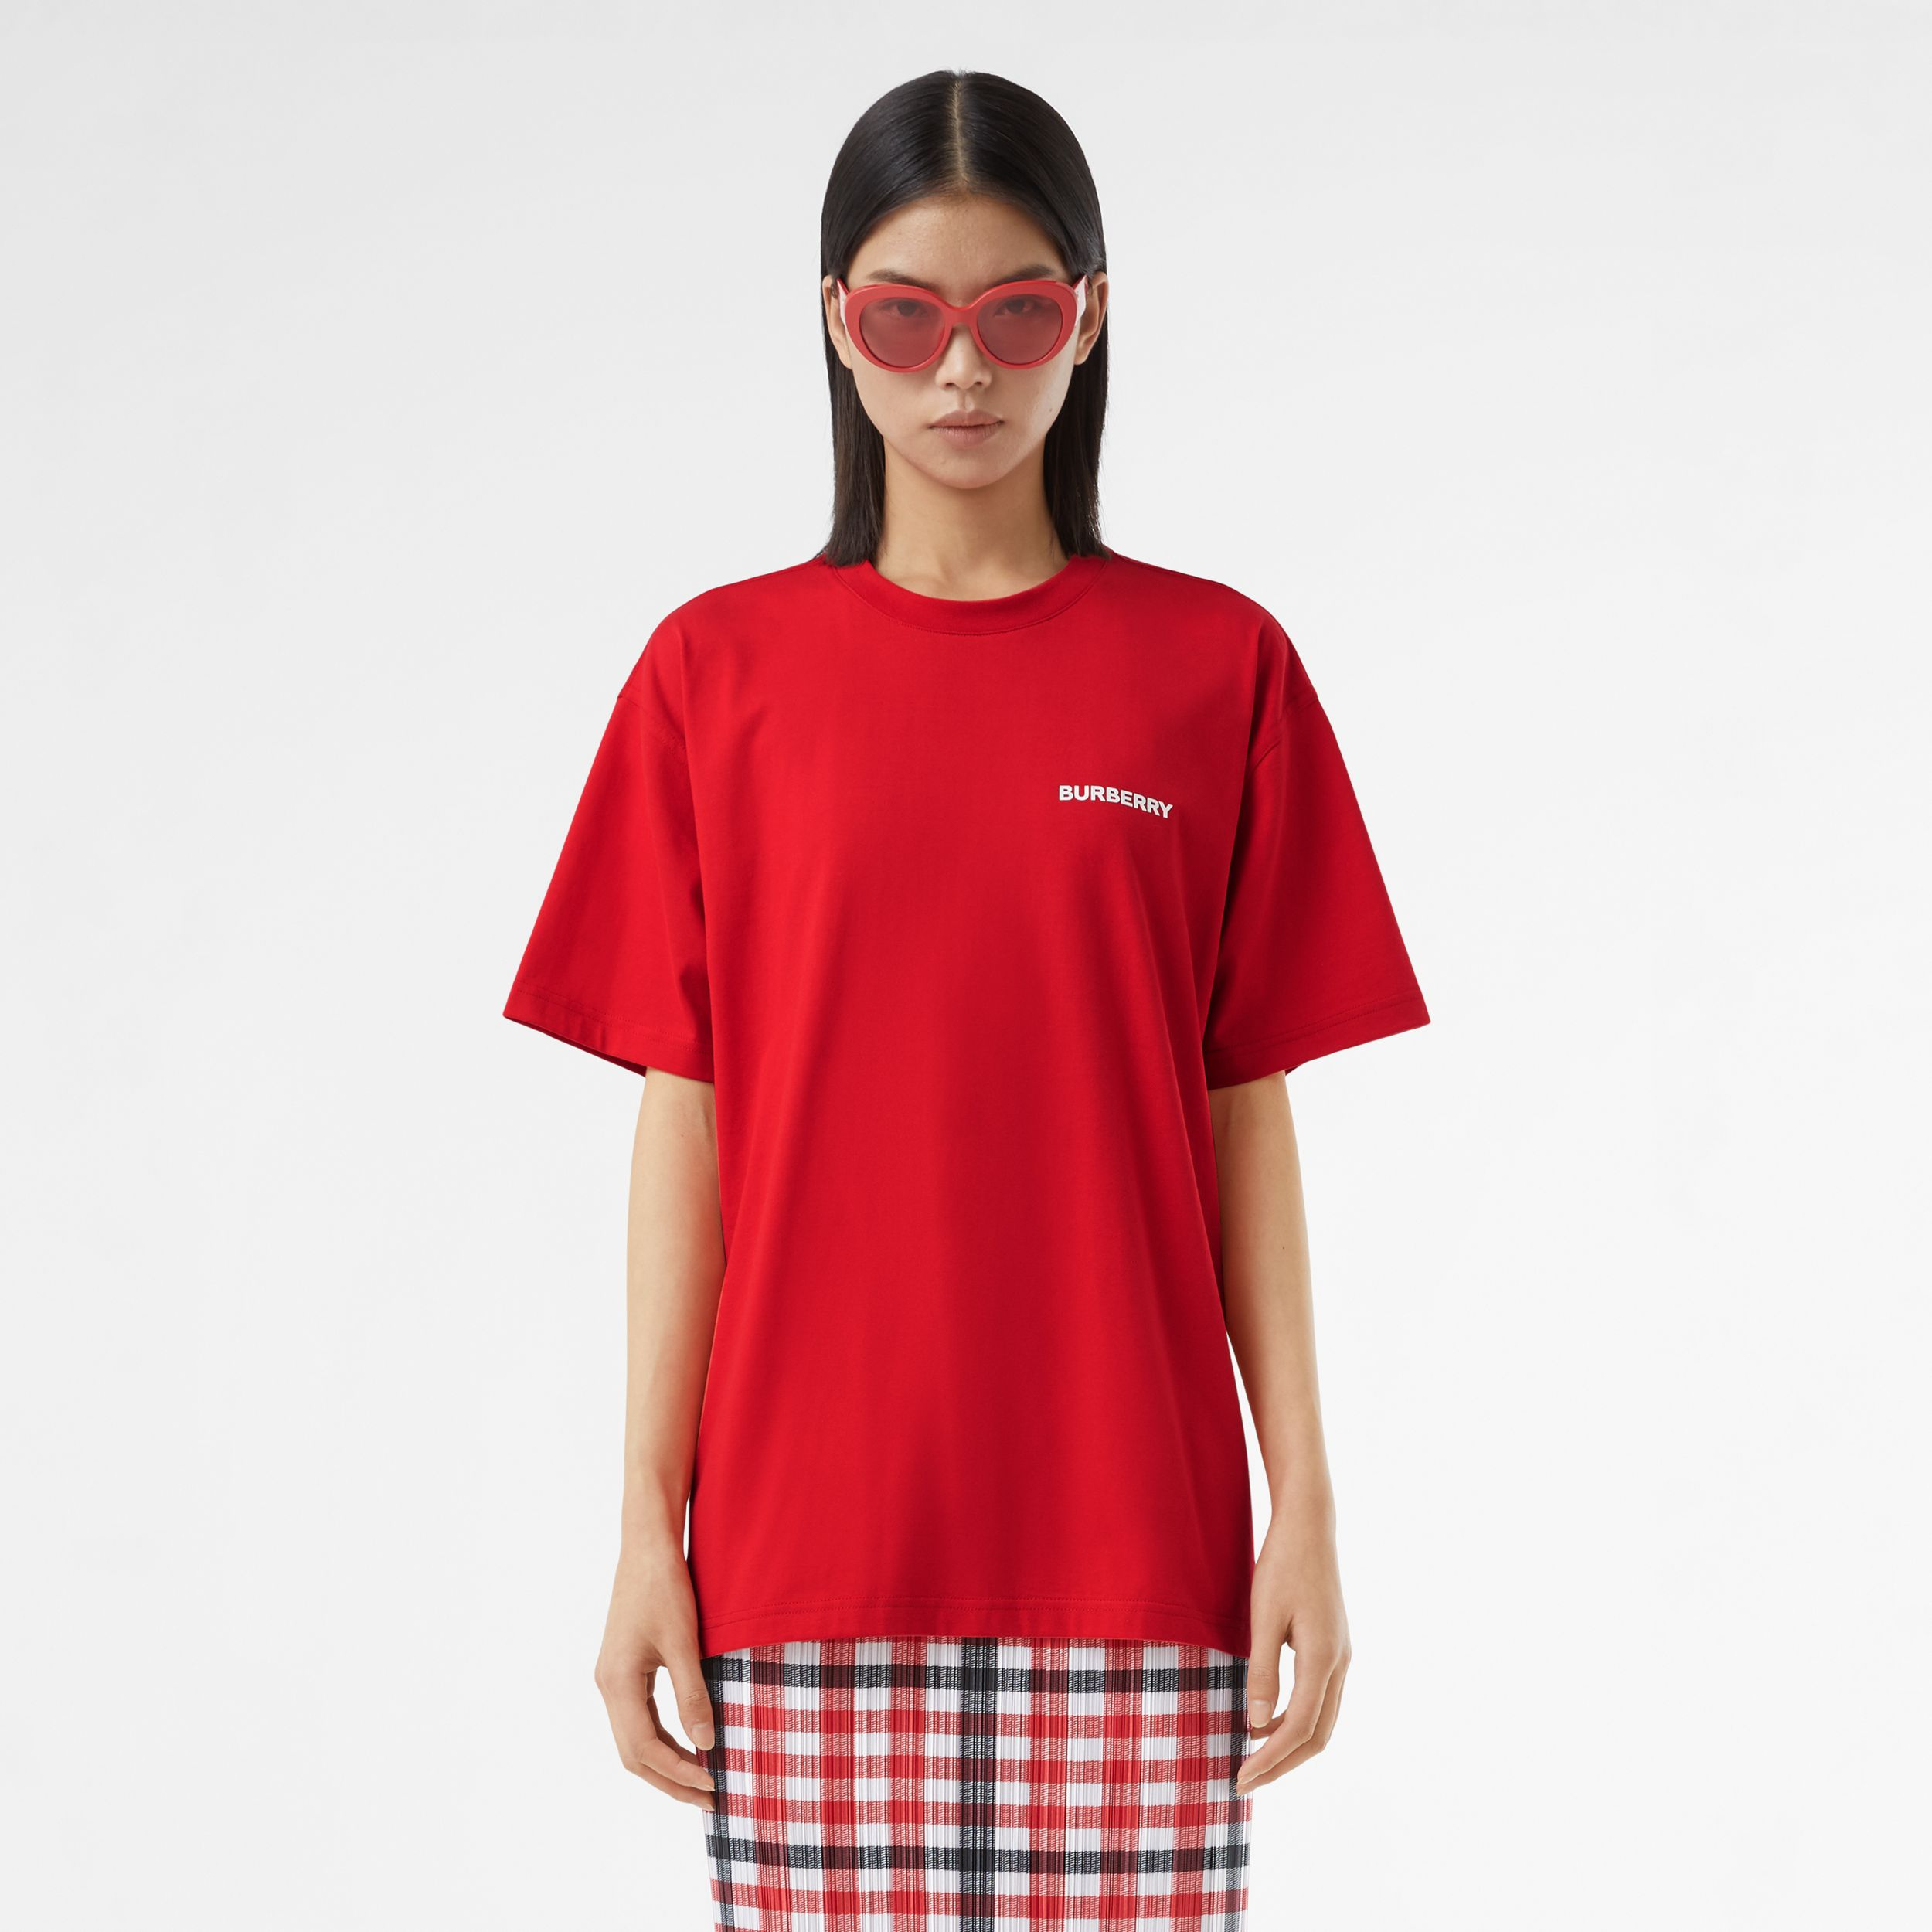 Montage Print Cotton T-shirt – Unisex in Bright Red | Burberry - 4